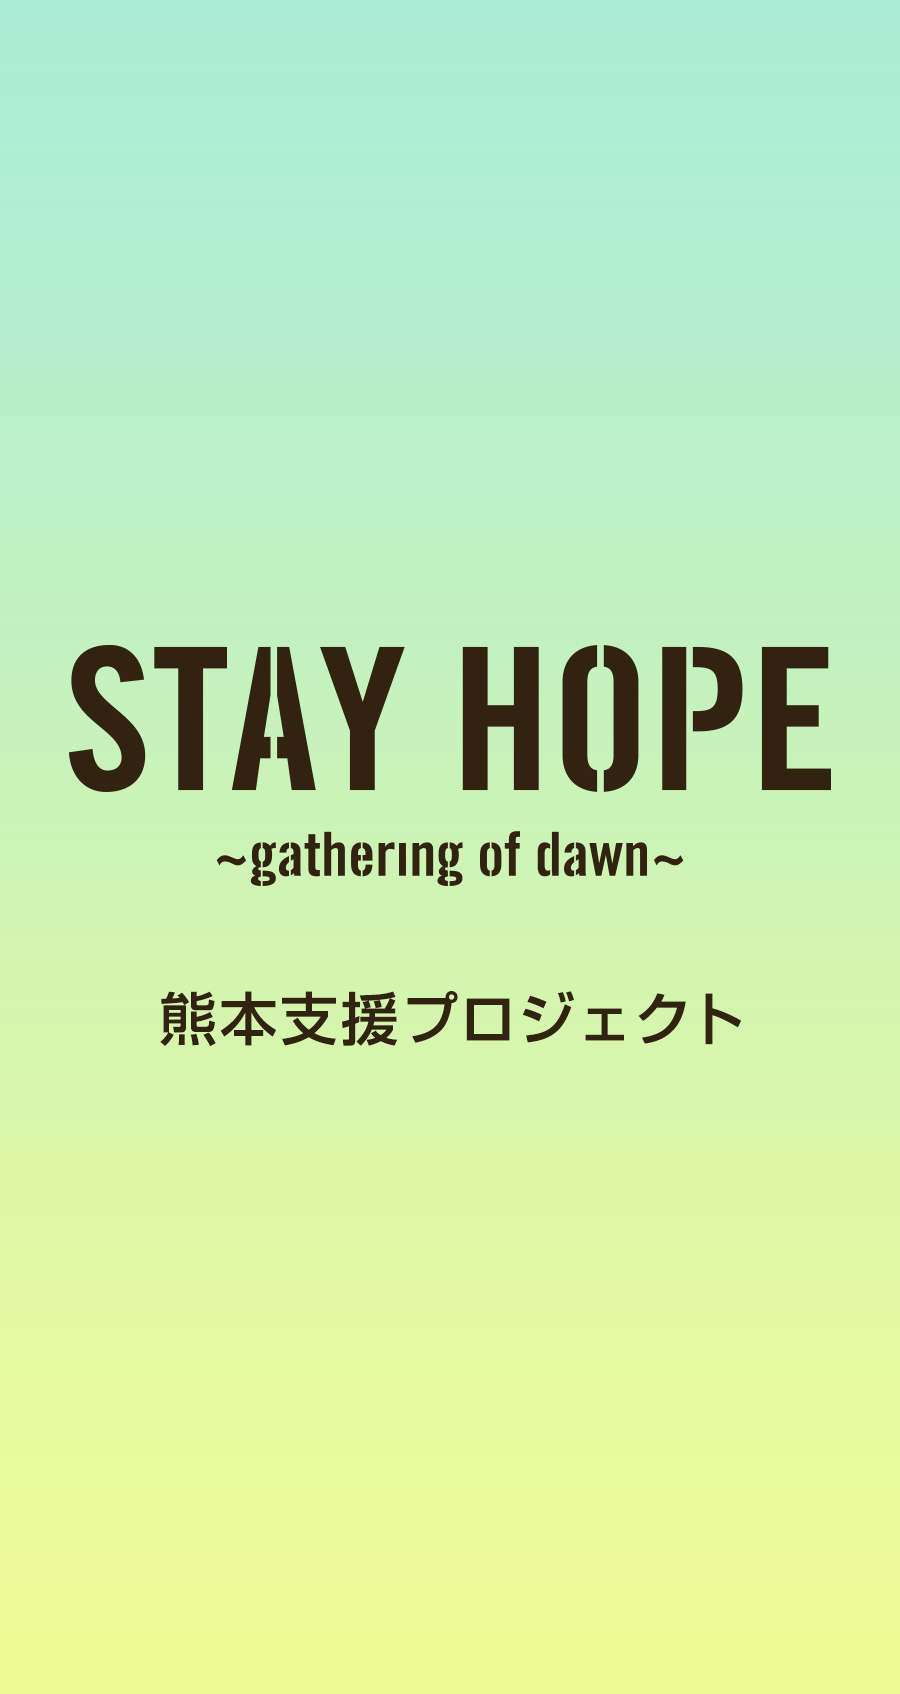 STAY HOPE ~gathering of dawn~ 熊本支援プロジェクト